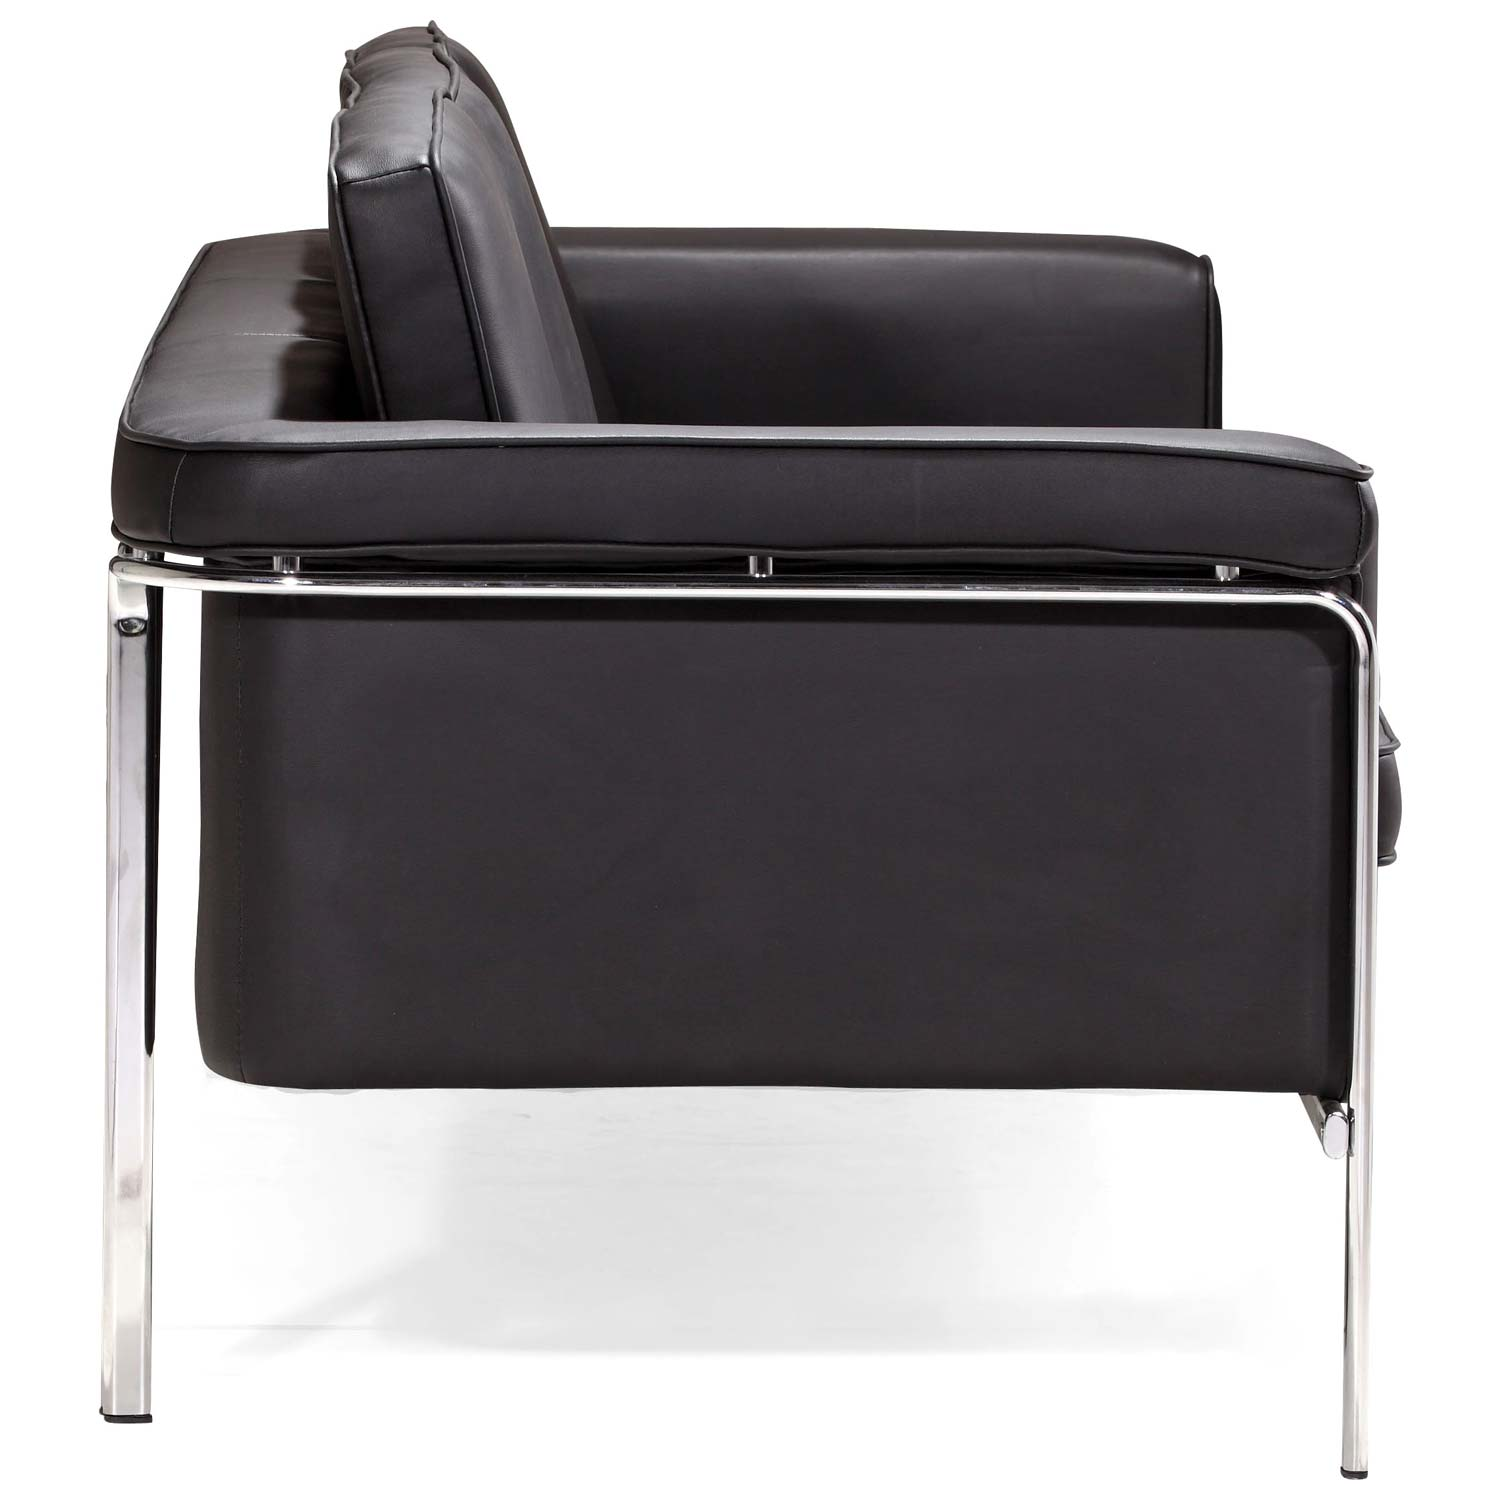 Singular Modern Sofa - Chrome Steel, Black - ZM-900166